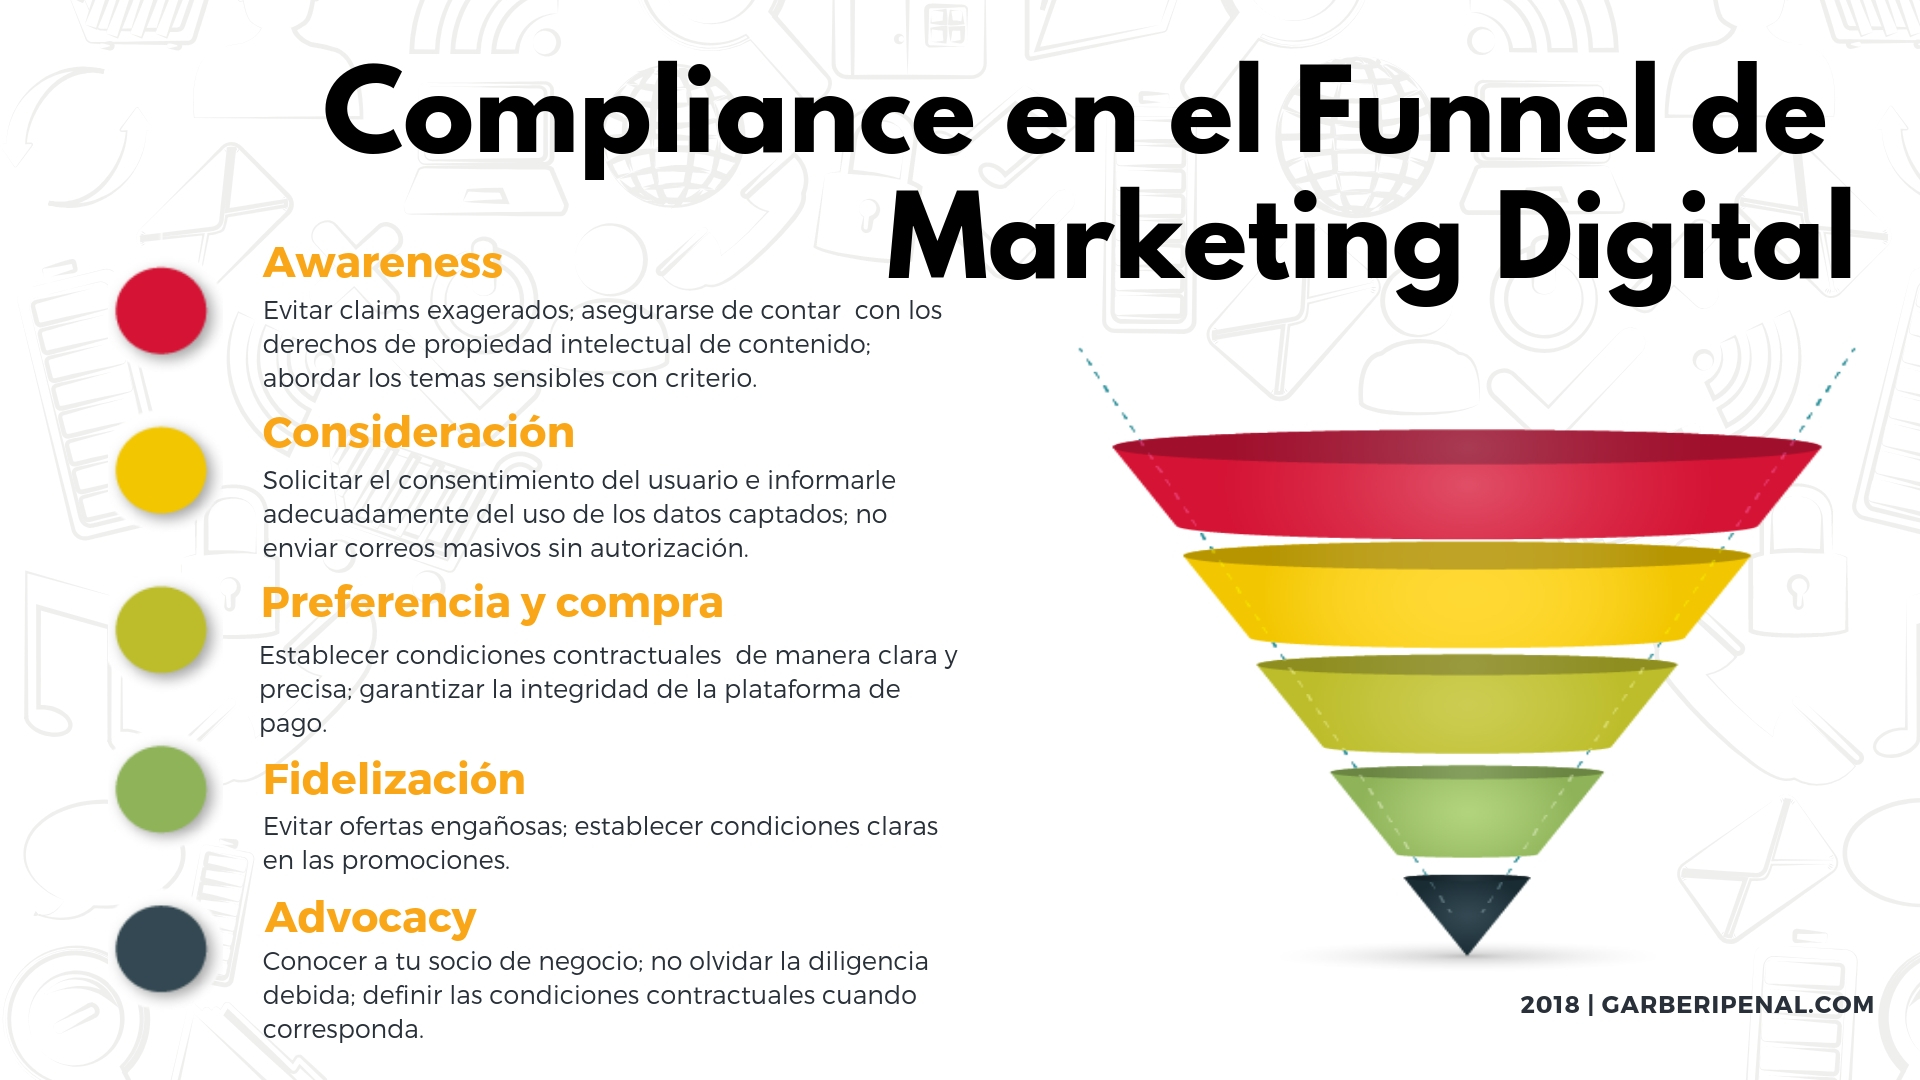 Compliance en el Funnel de Marketing Digital